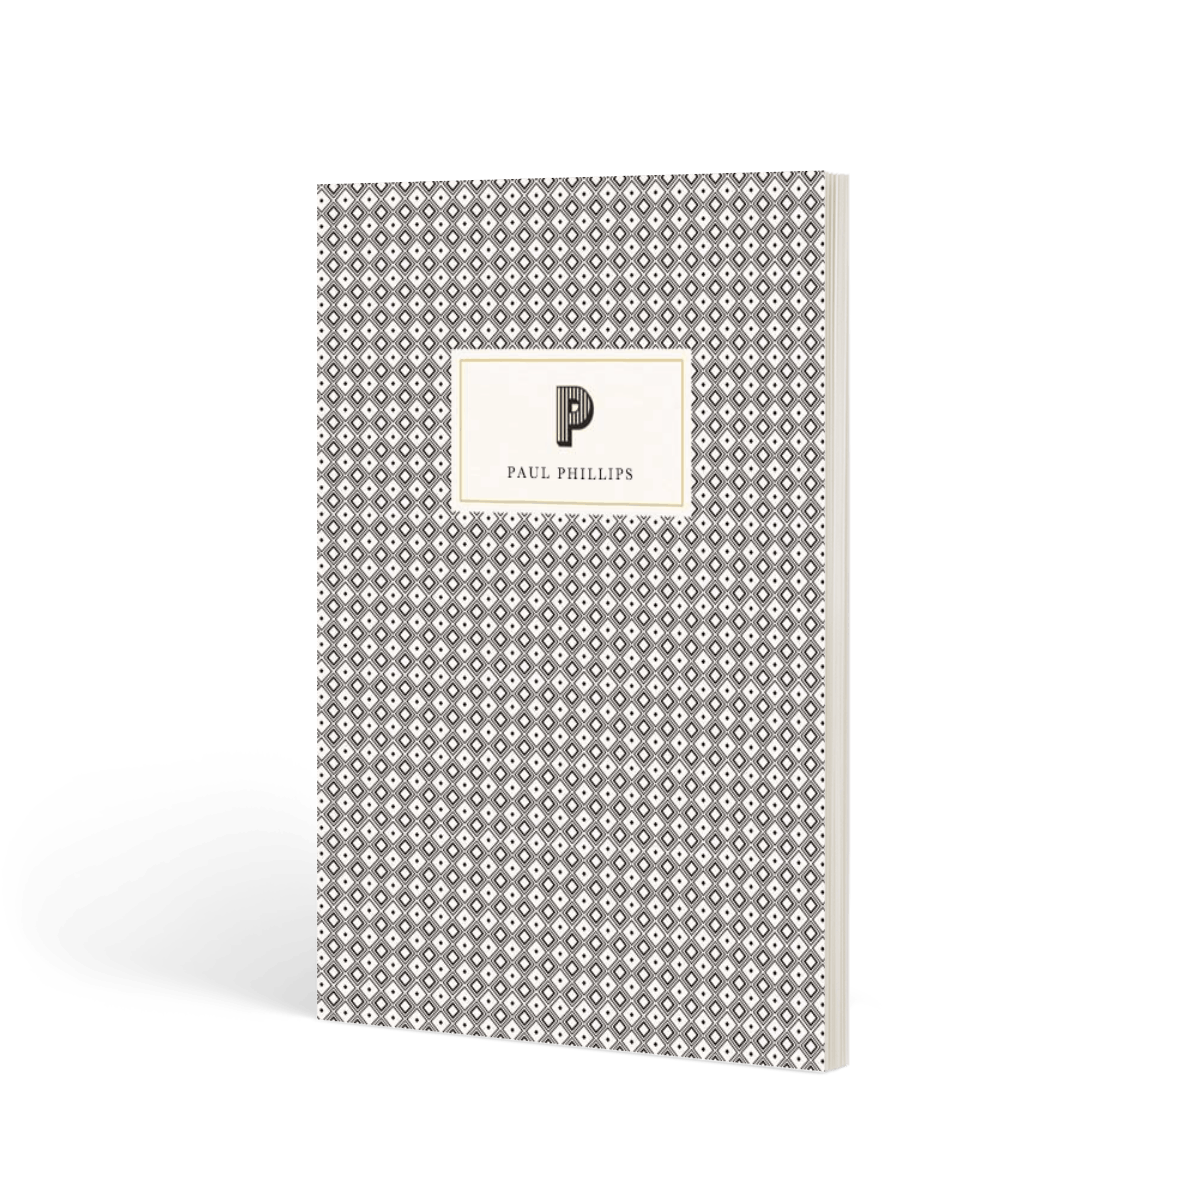 Https%3a%2f%2fwww.papier.com%2fproduct image%2f13669%2f6%2fmonogramme a z 3508 avant 1478802536.png?ixlib=rb 1.1